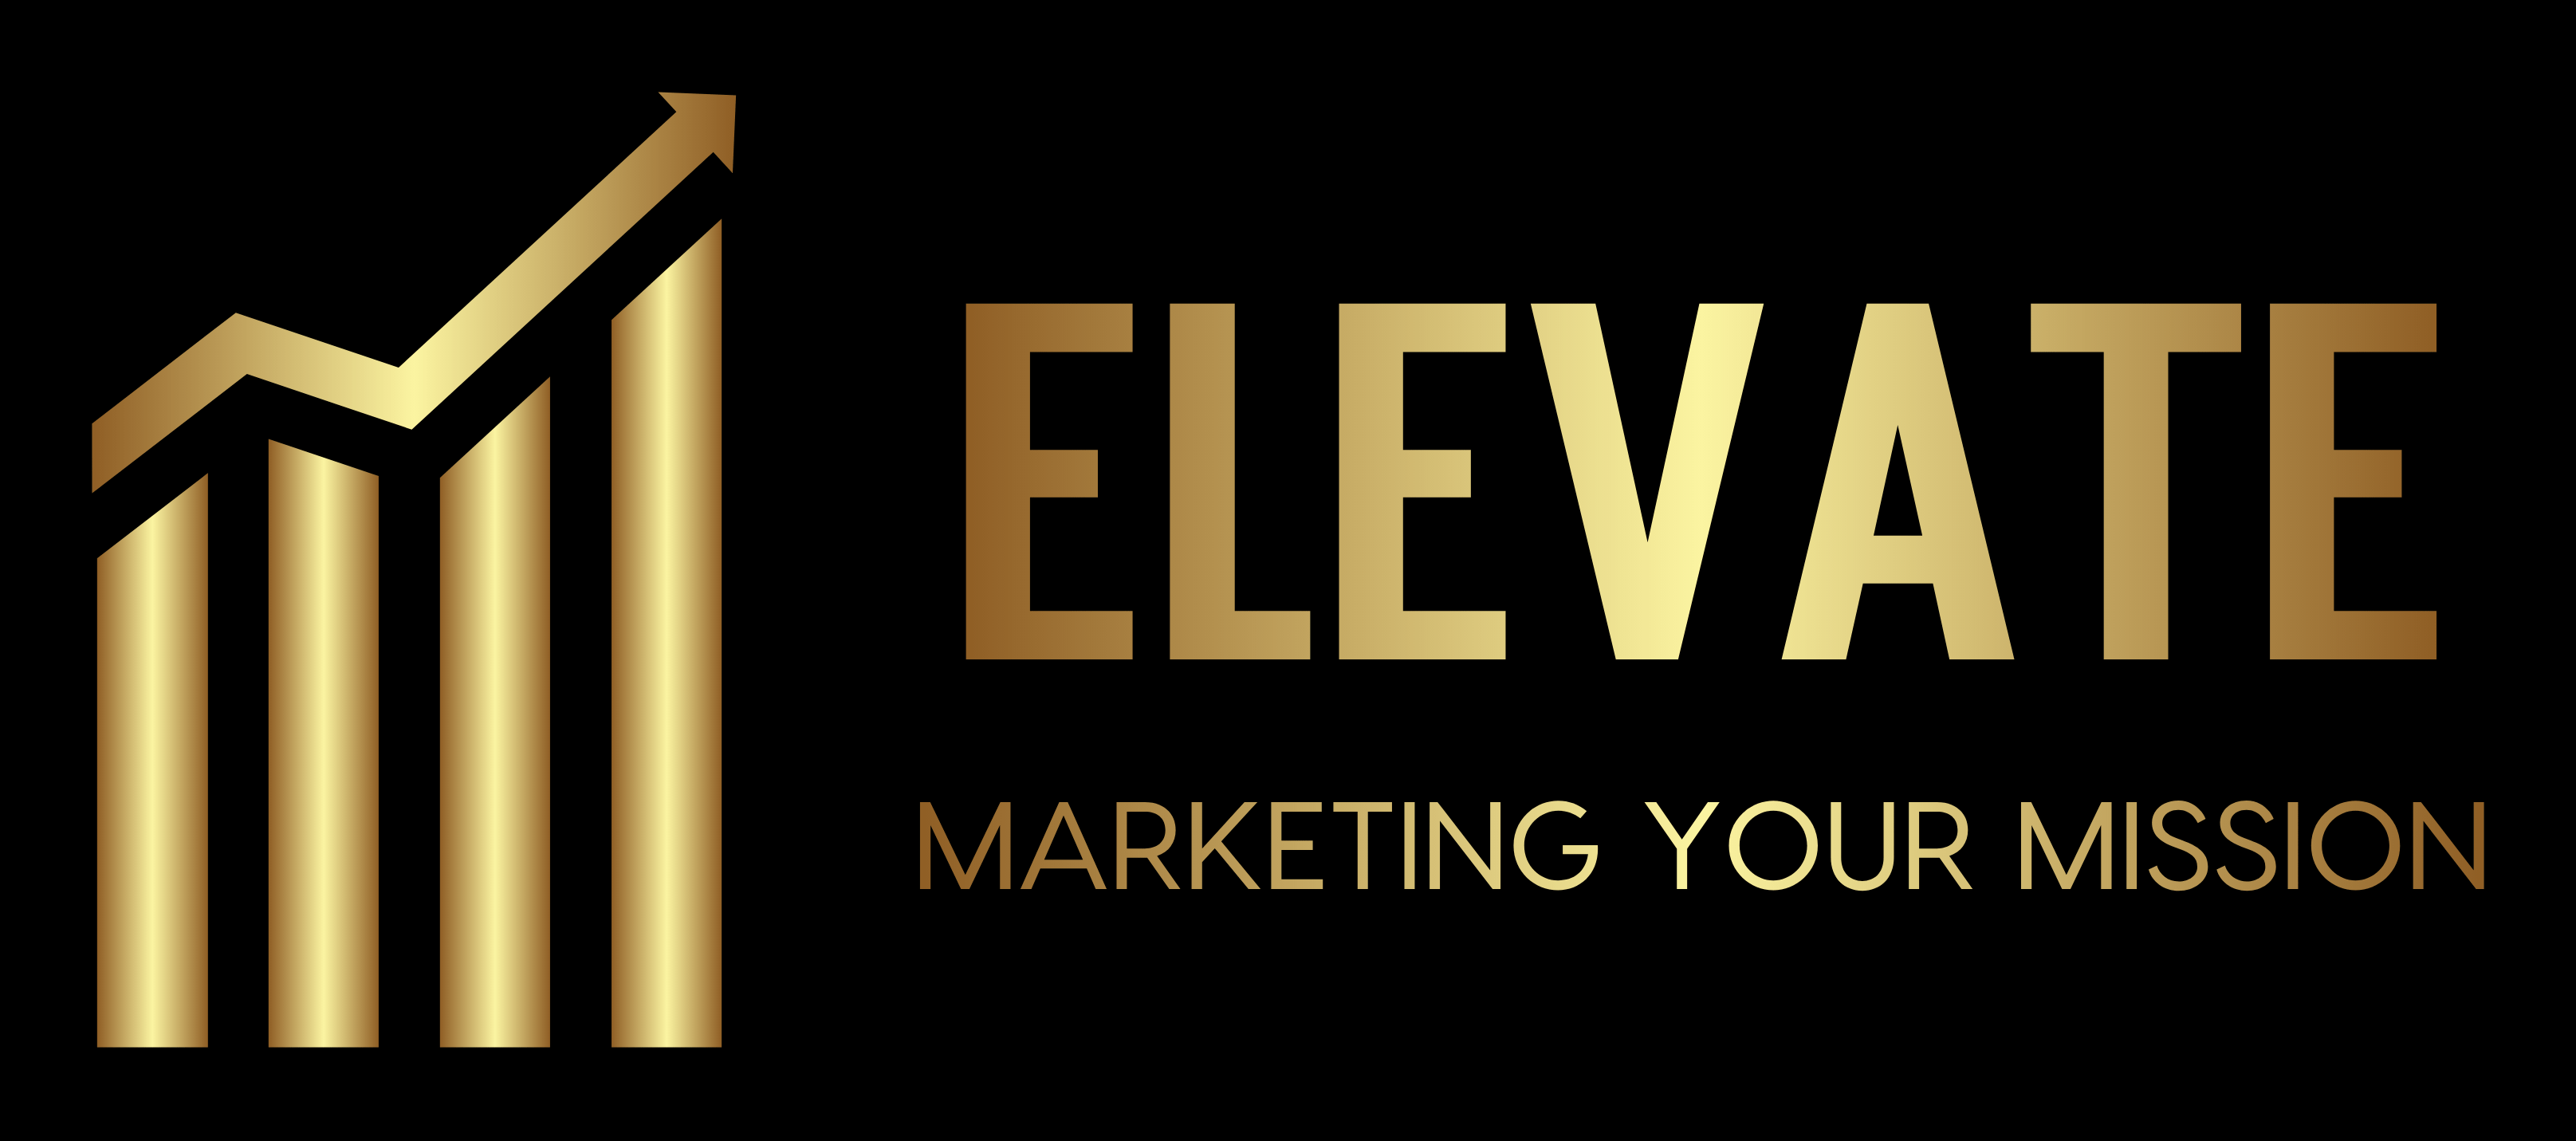 Elevate Marketing advertising agency